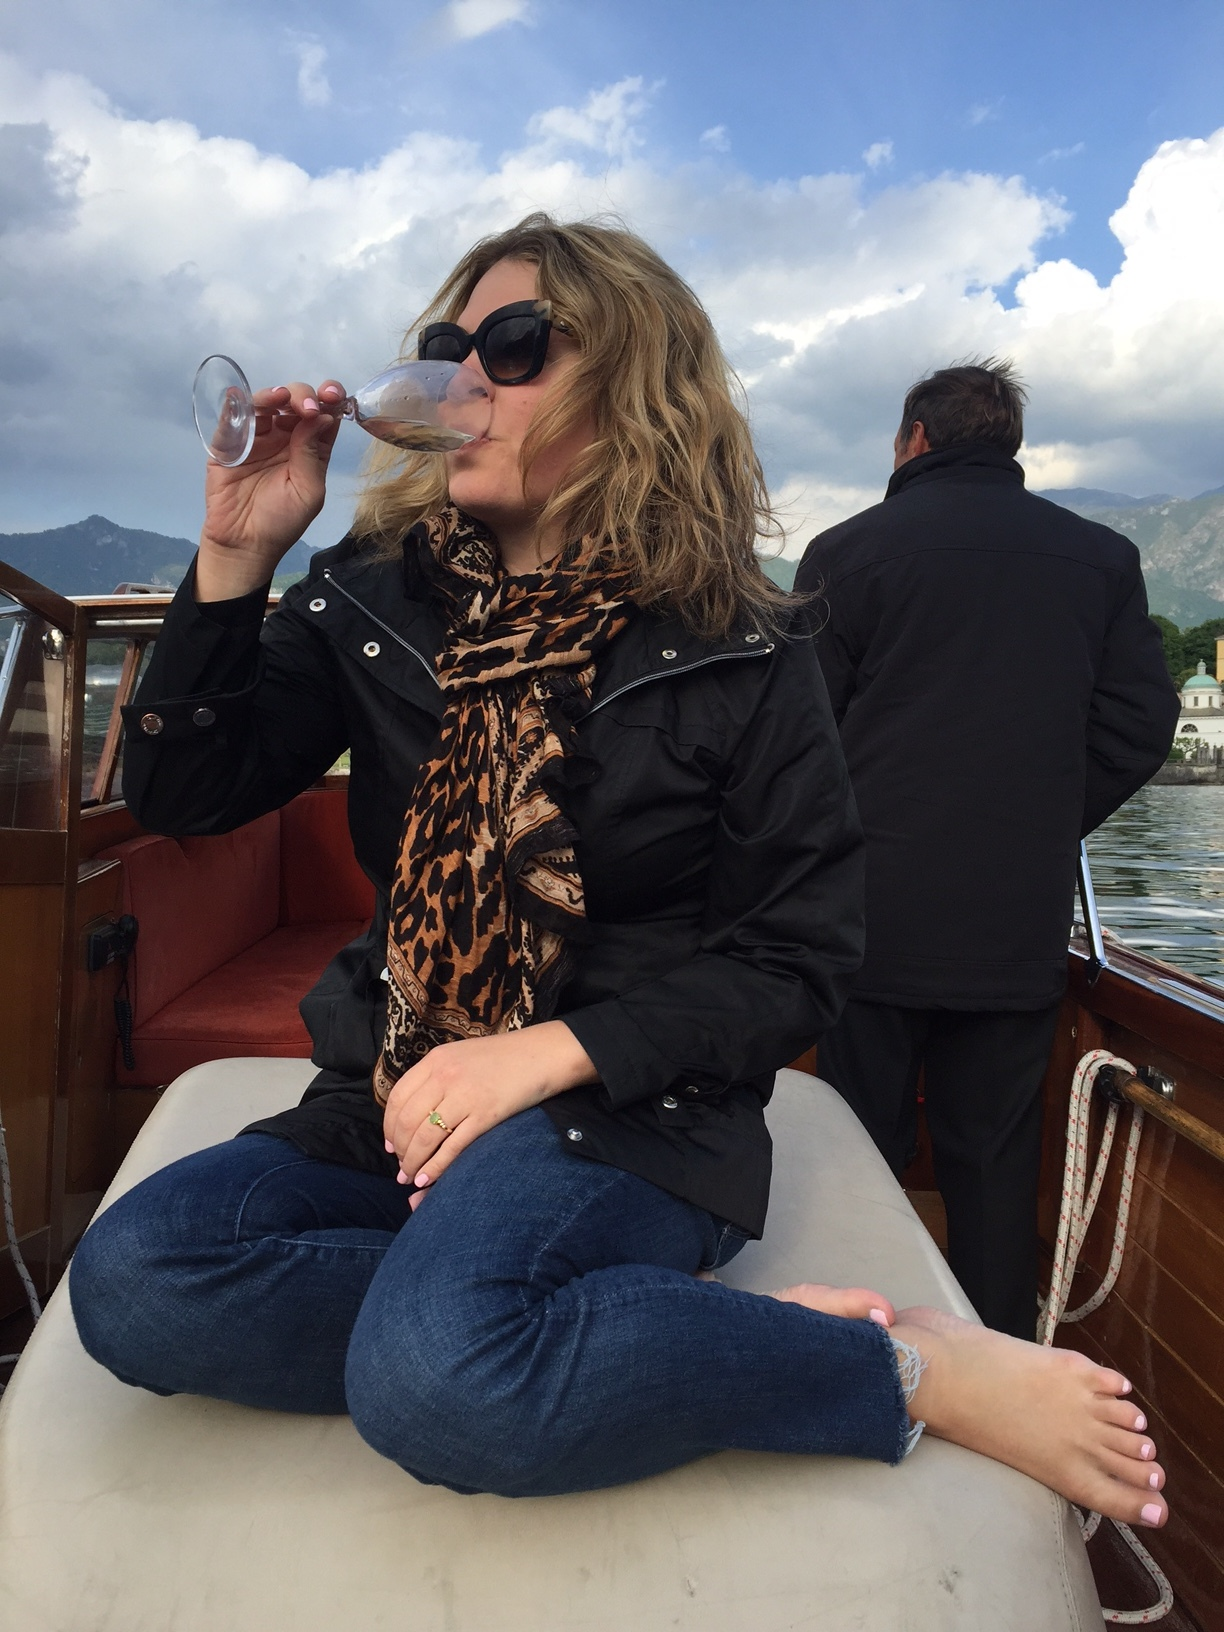 One of my all-time favorite trips in May 2016:staying at the Grand Hotel Tremezzo in Lake Como, Italy. Totally obnoxious champagne on boat shot. But what a day!